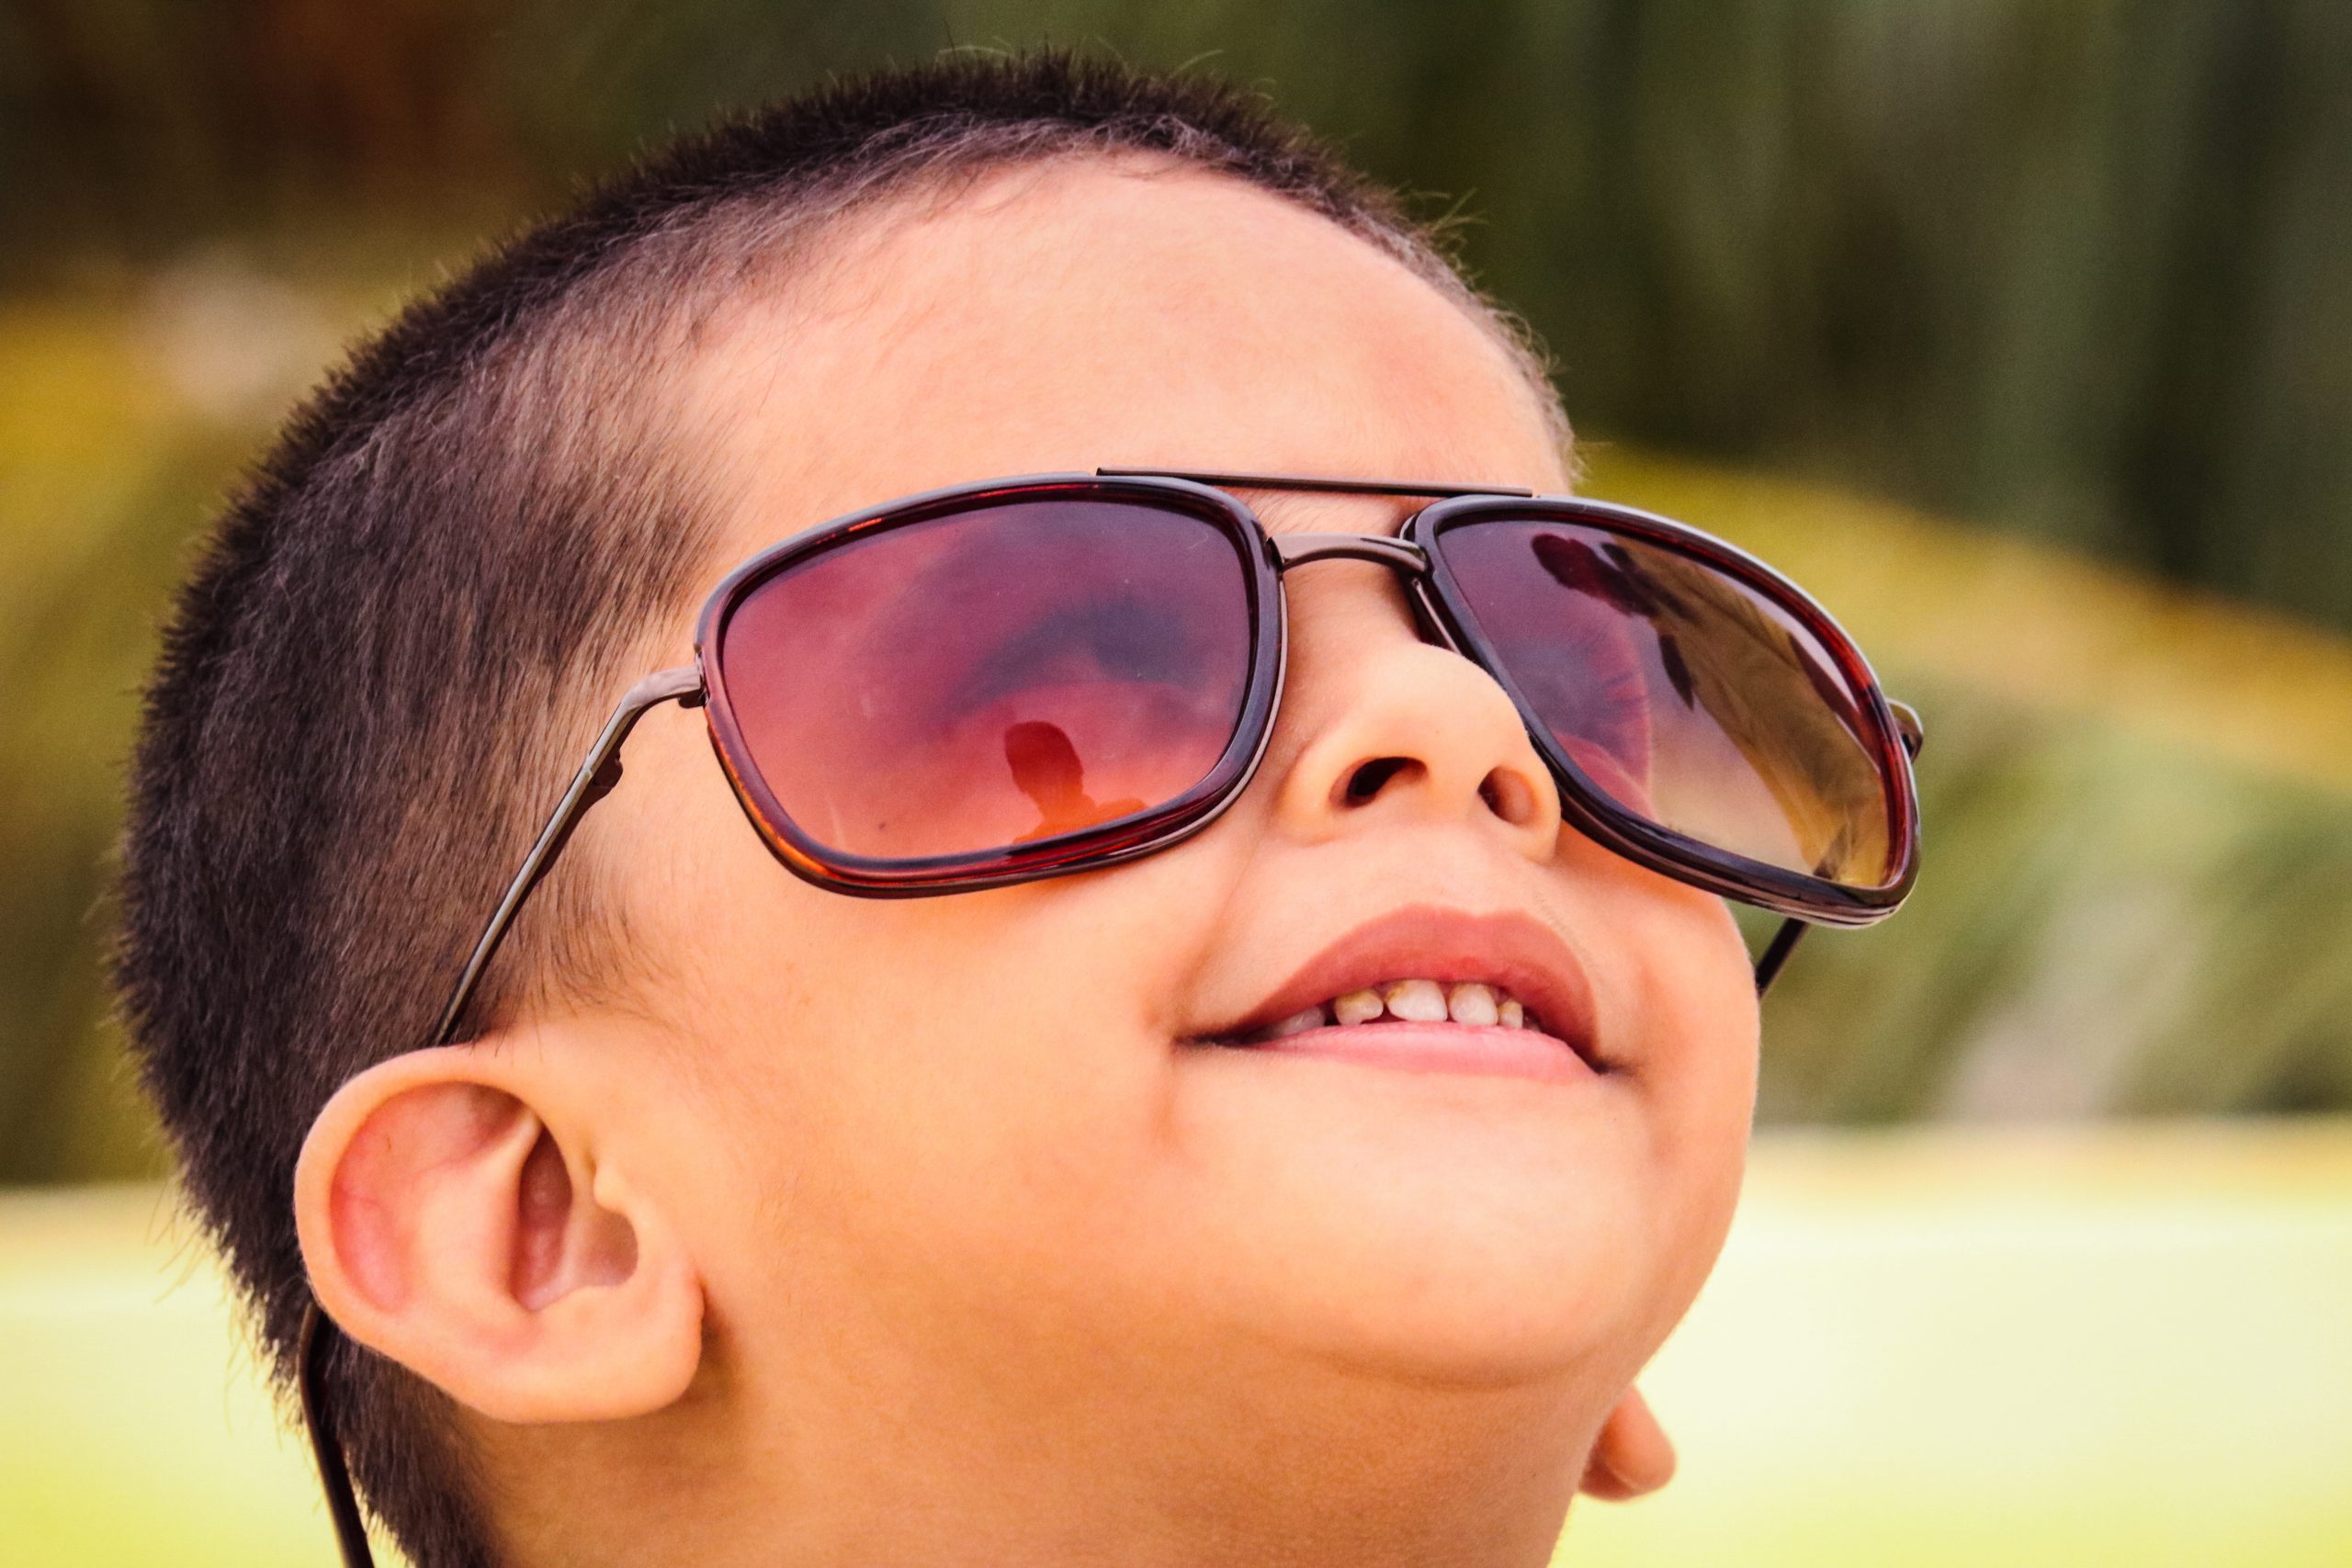 kid with sunglasses